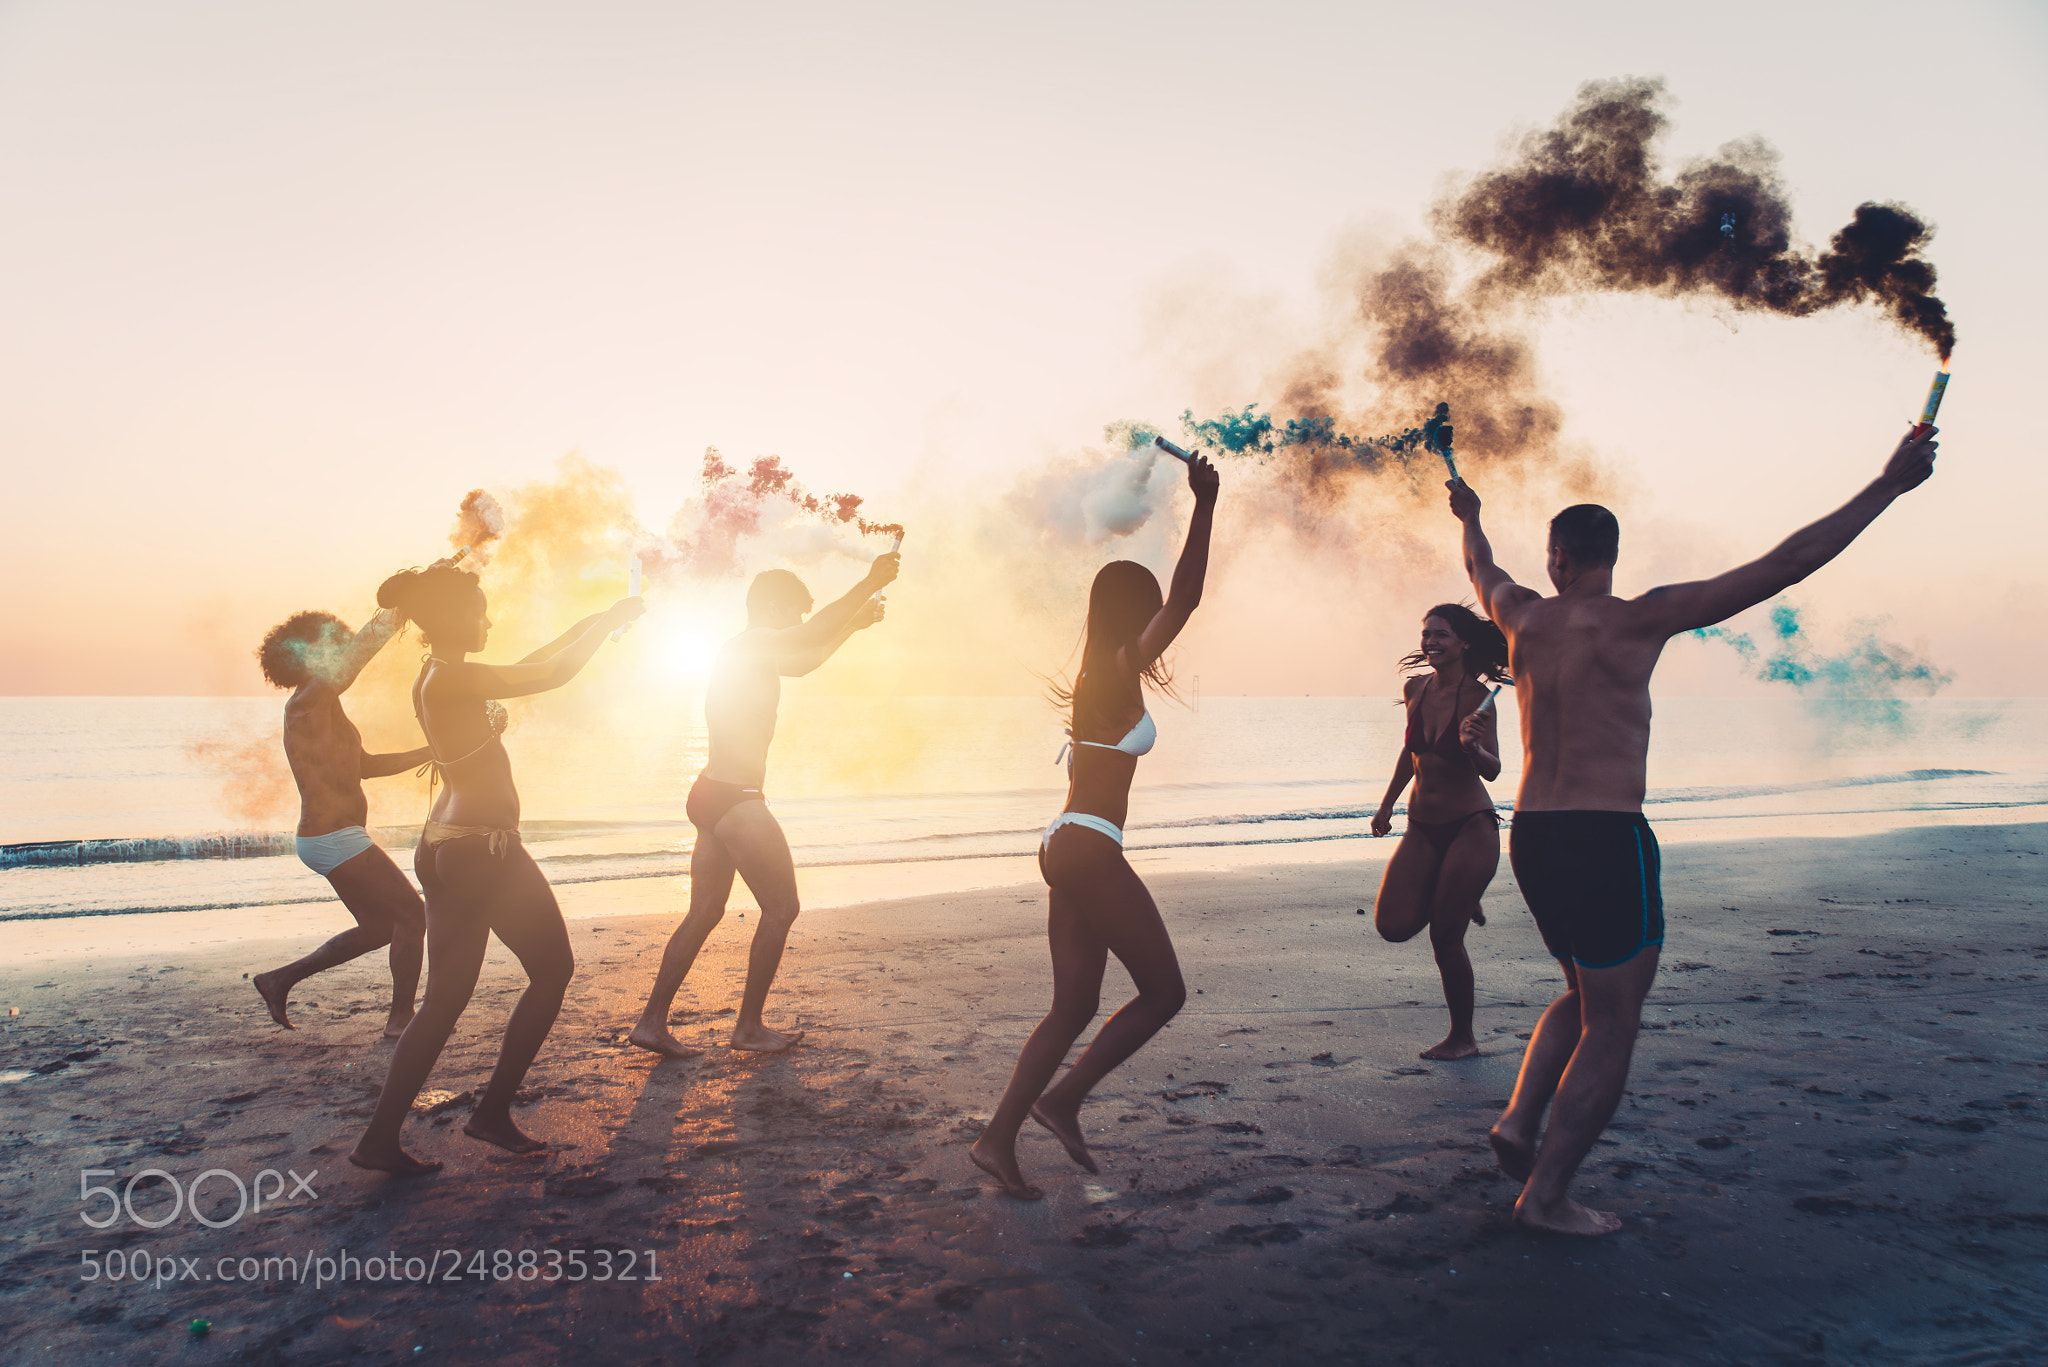 Group Of Friends Having Fun Running On The Beach With Smoke Bomb Group Of Friends Beach Friends Running On The Beach